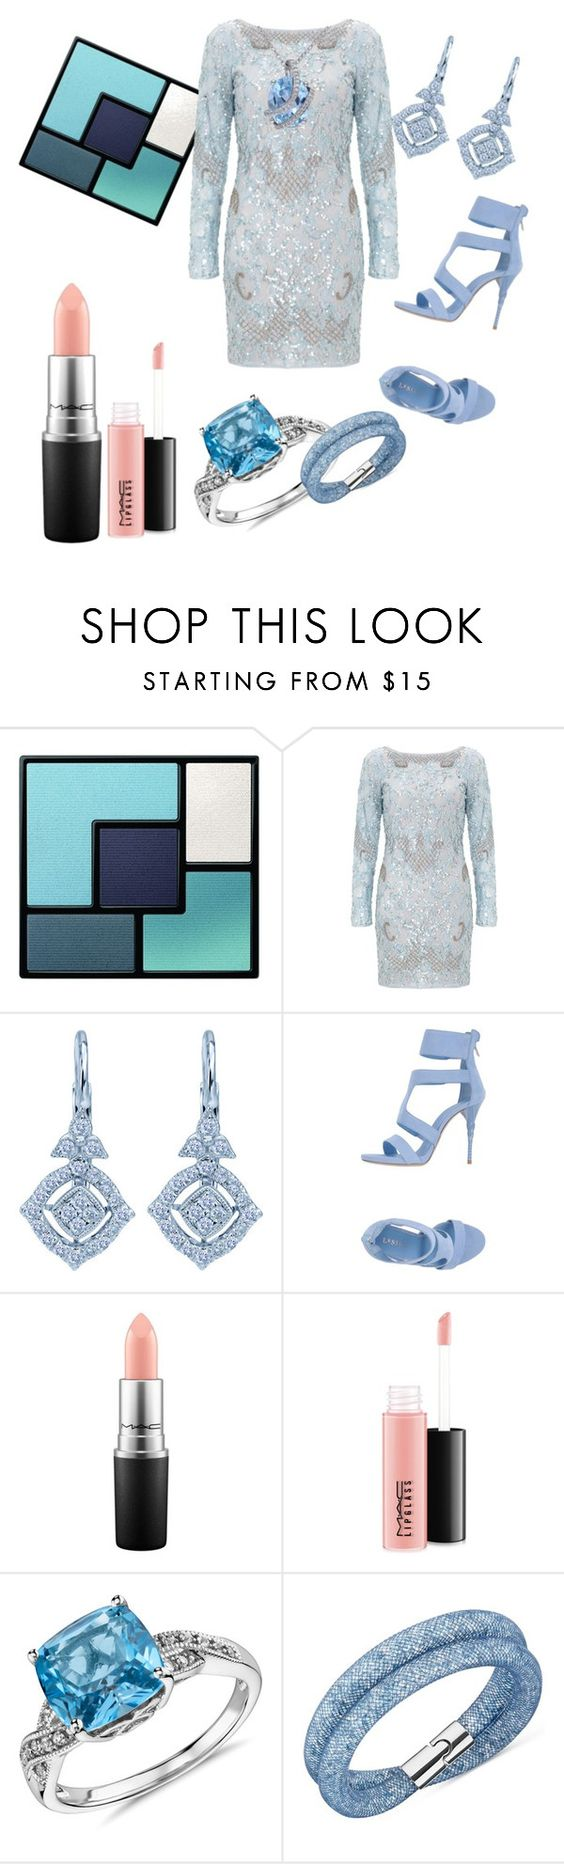 """""""Frost Blue"""" by lindadrotner ❤ liked on Polyvore featuring Yves Saint Laurent, Aidan Mattox, Le Silla, MAC Cosmetics, Blue Nile, Swarovski, Miadora, women's clothing, women's fashion and women"""